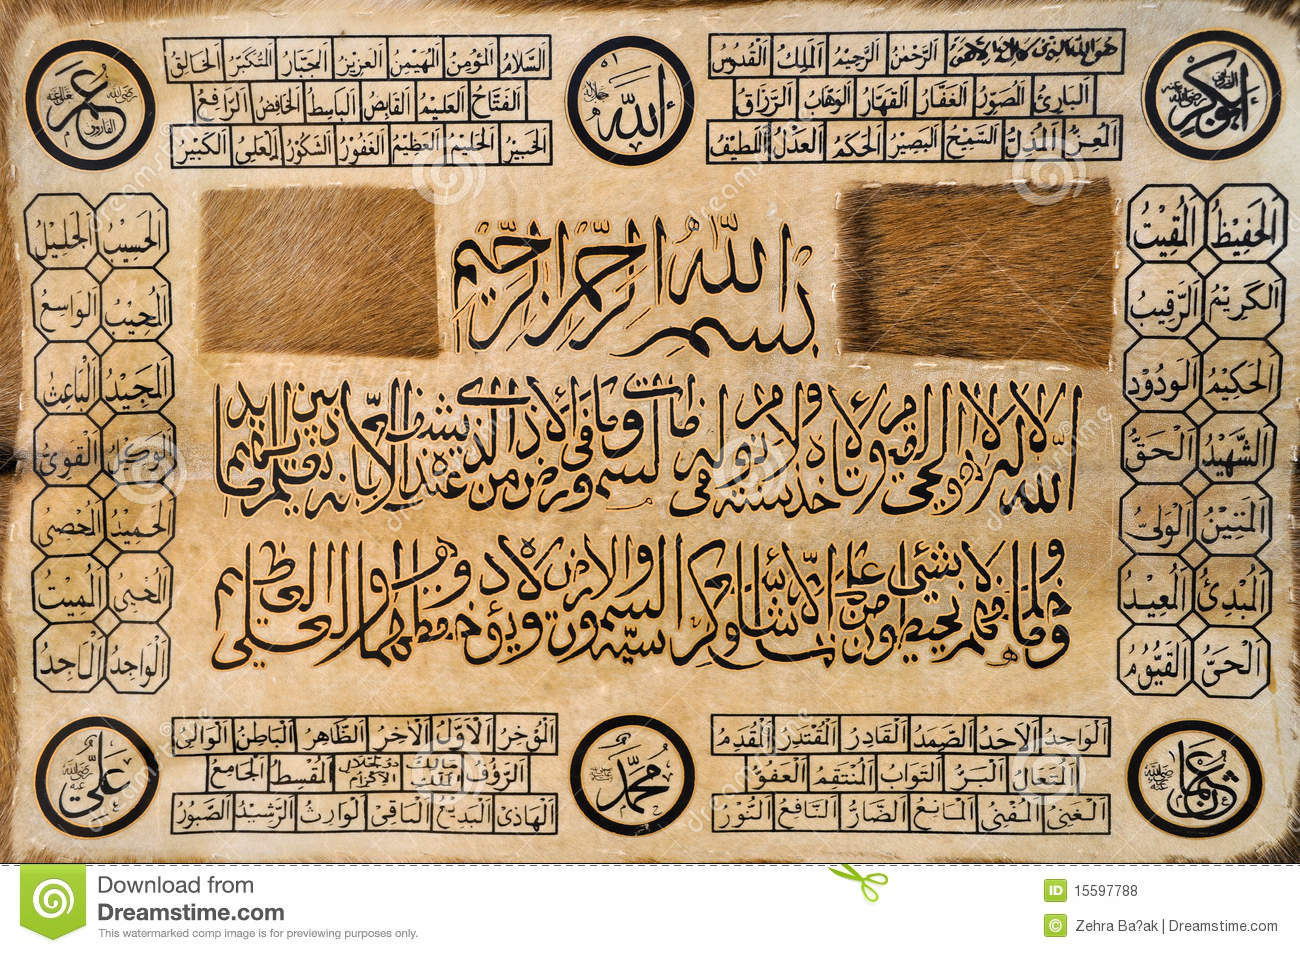 Popular Wallpaper Marble Calligraphy - islamic-calligraphy-15597788  Pictures_866065.jpg